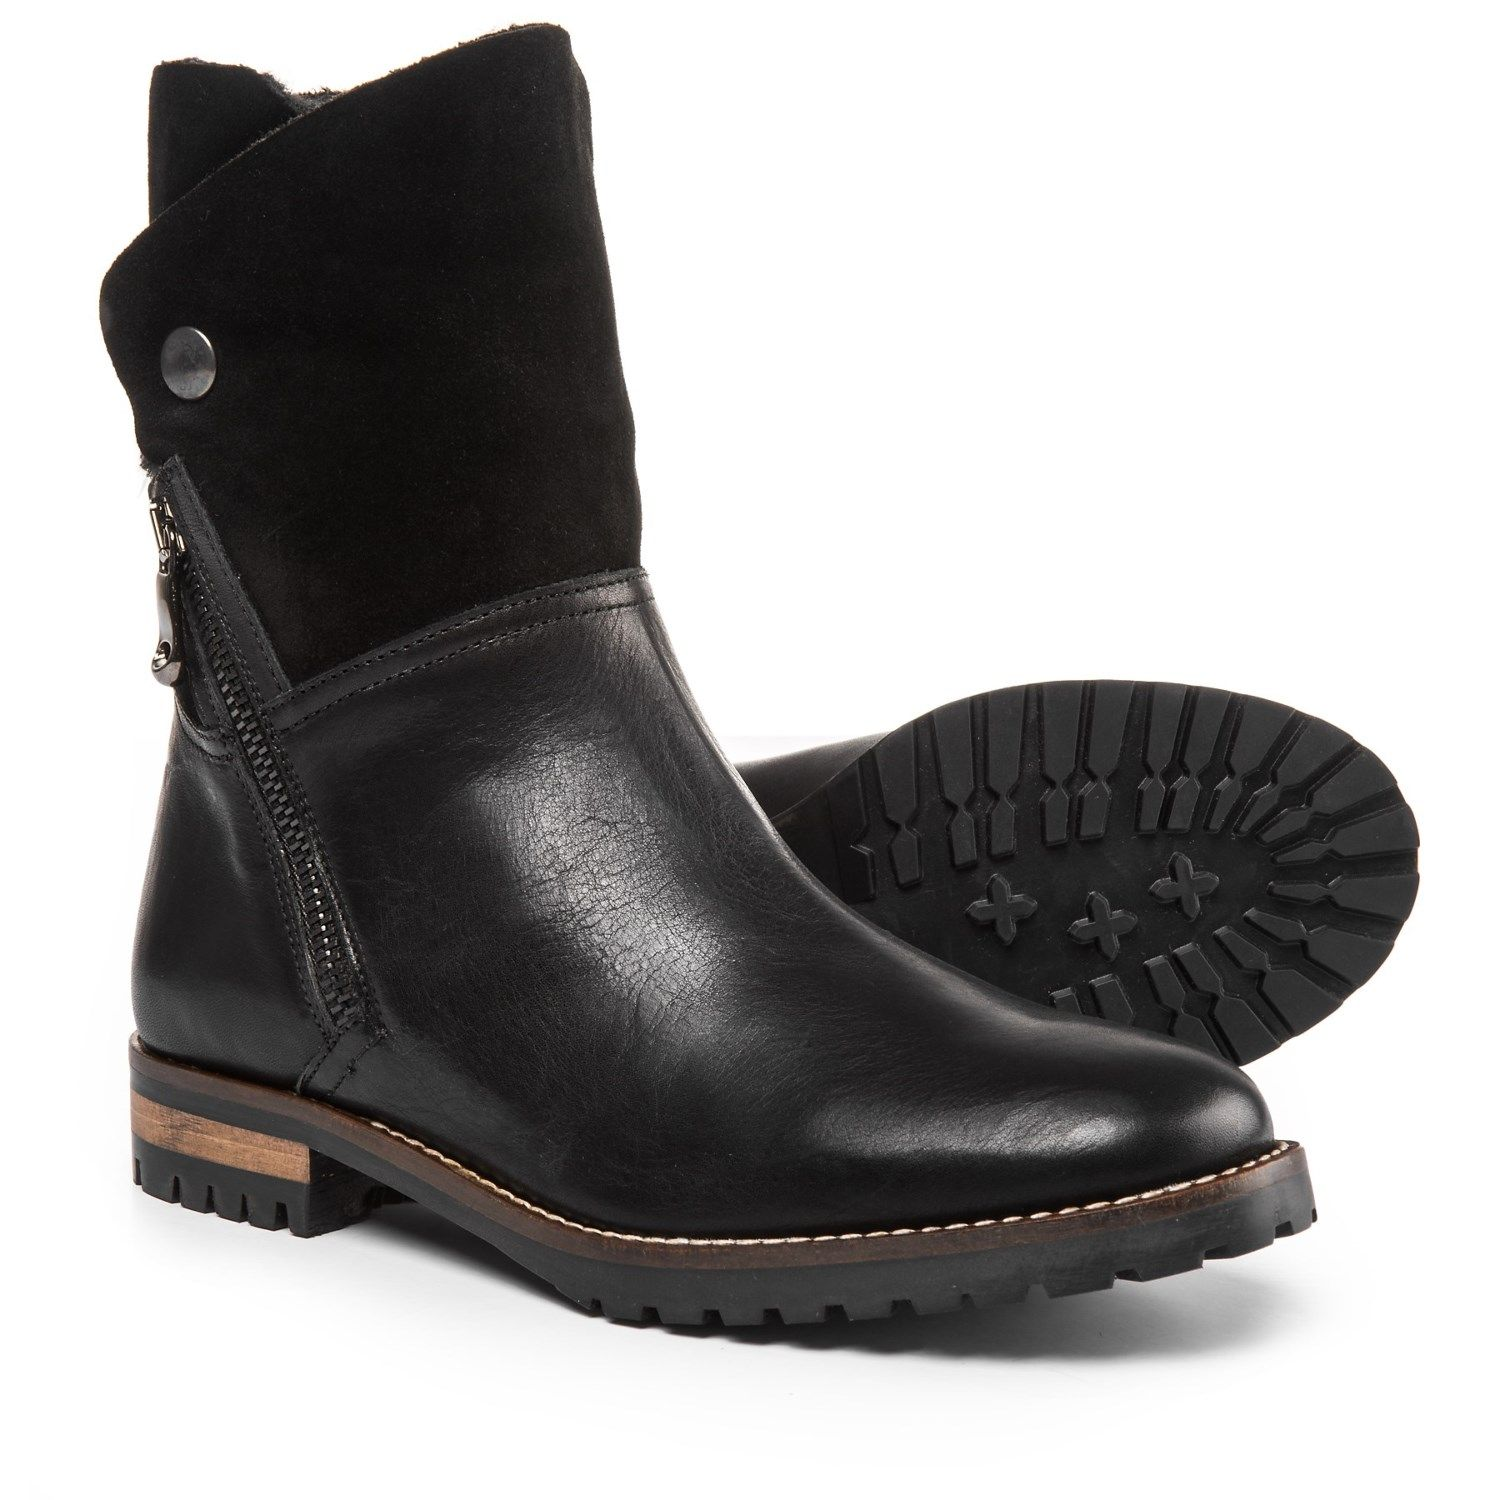 323a3feba3b Fabianelli Made in Italy Fur-Lined Boots - Leather (For Women ...